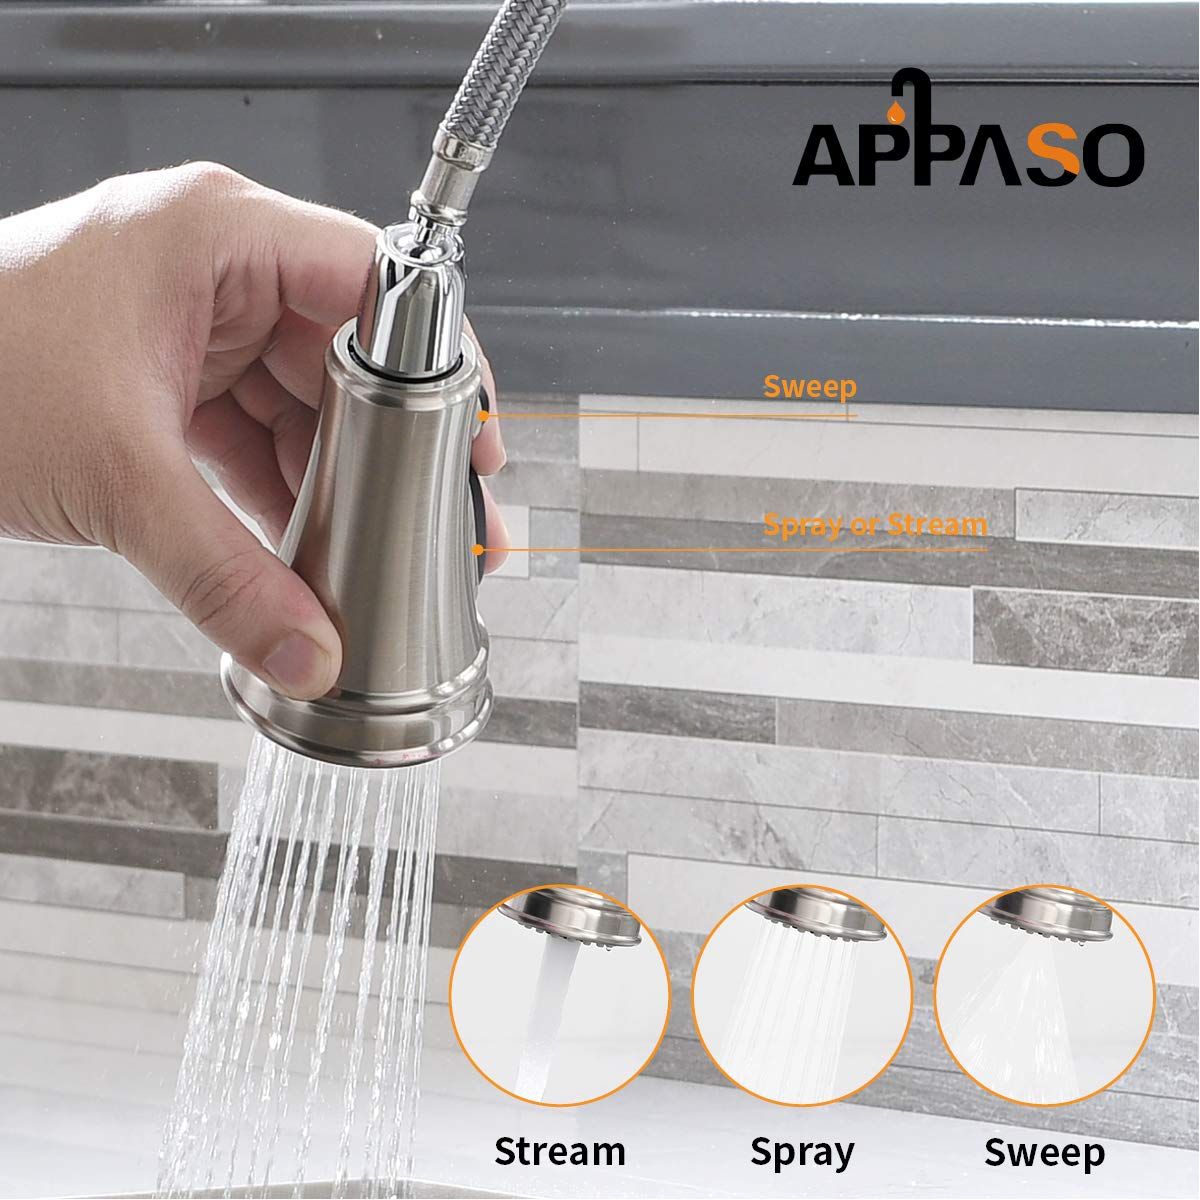 APPASO Single Handle Pull Down Kitchen Faucet with Sprayer, Stainless Steel Brushed Nickel High Arc Single Hole Pull Out Spray Head Kitchen Sink Faucet with Escutcheon by APPASO (Image #3)